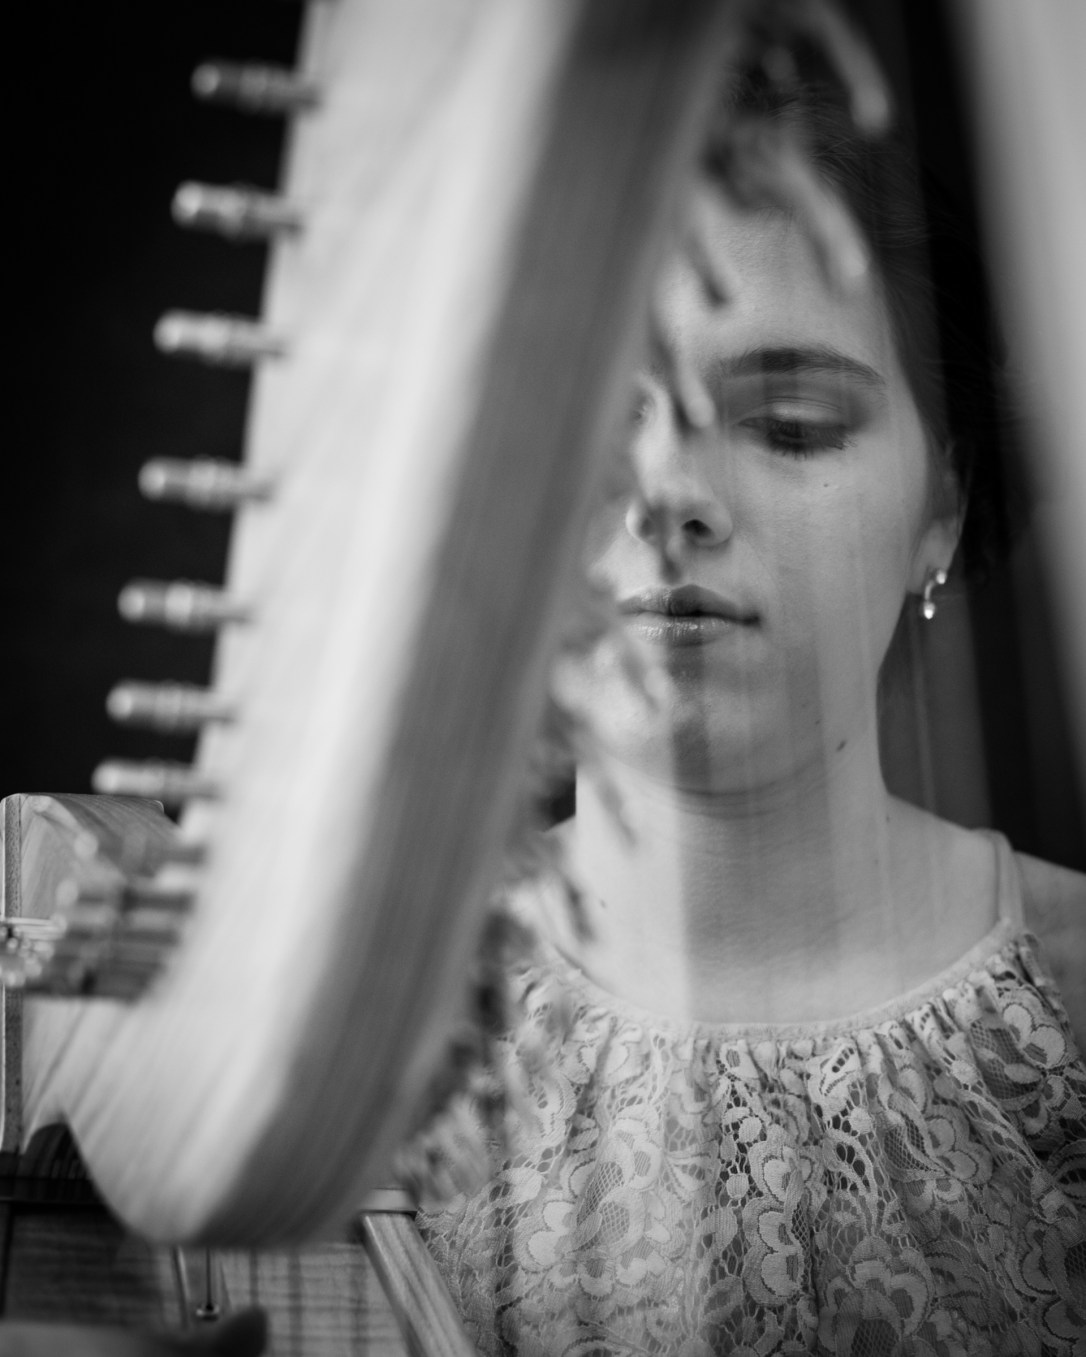 Close up of wedding harpist, through the strings